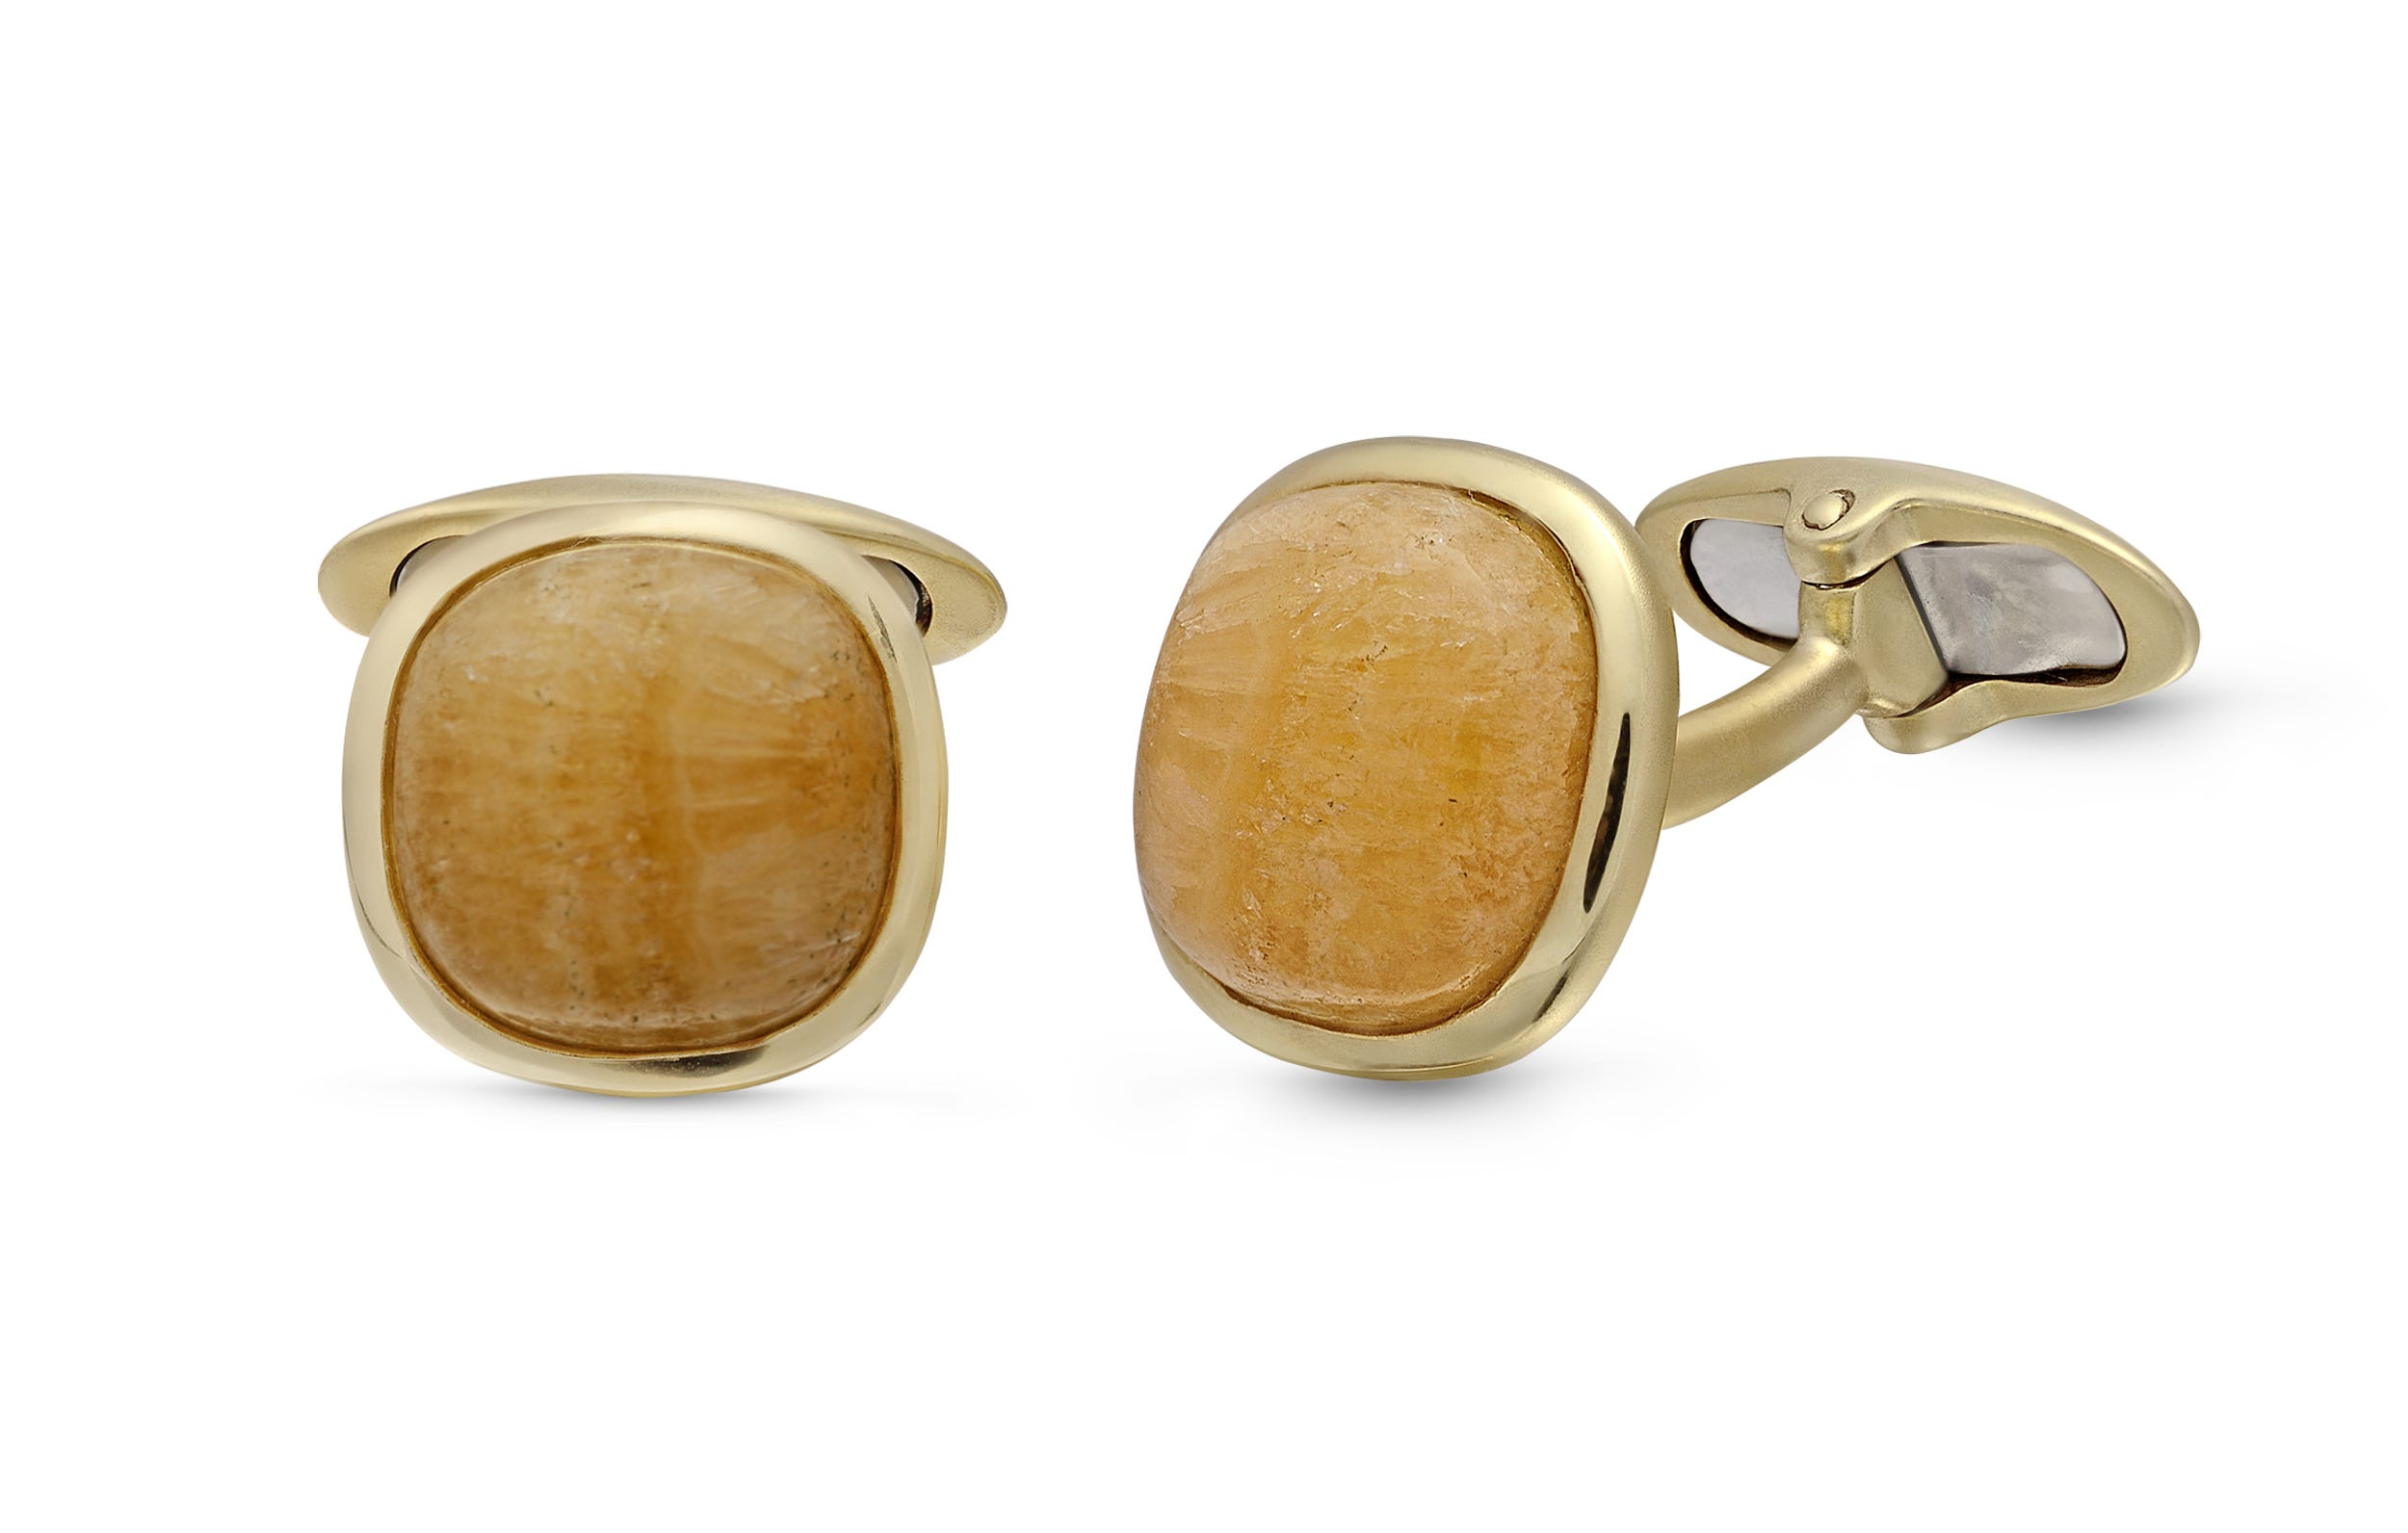 Yellow Lace Agate Stone Cufflinks in Sterling Silver & 14k Yellow Gold Plating